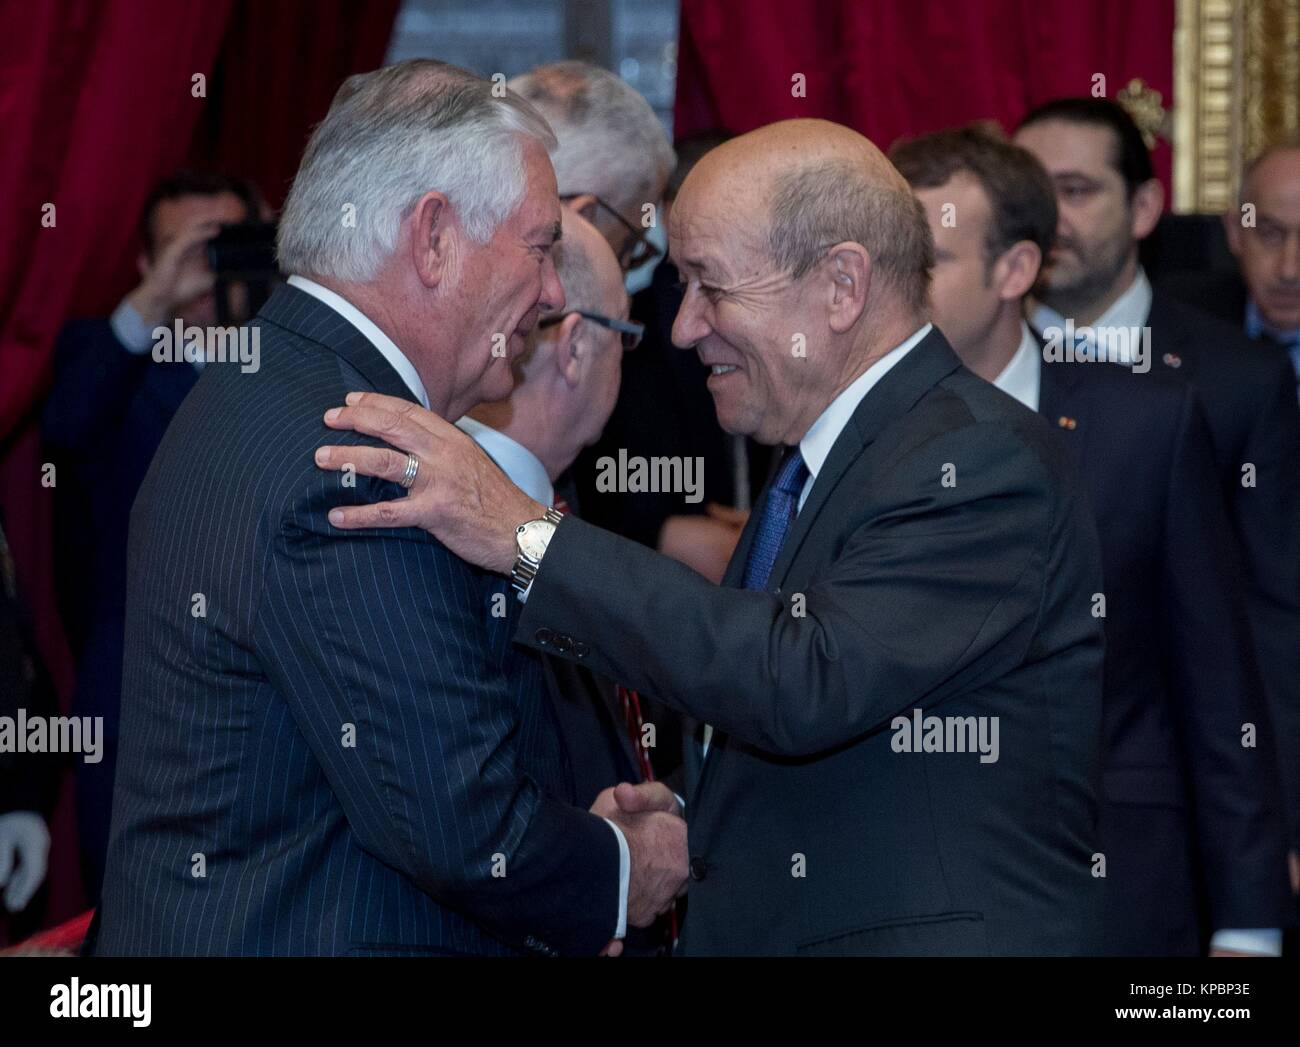 U.S. Secretary of State Rex Tillerson (left) greets French Foreign Minister Jean-Yves Le Drian during the International Stock Photo